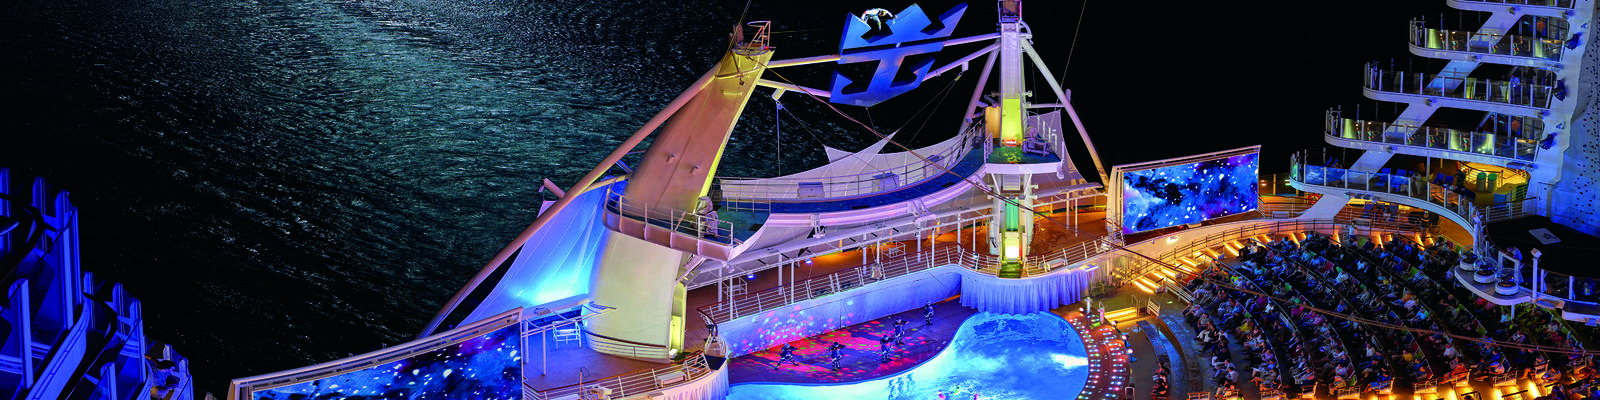 The AquaTheater on Royal Caribbean's Allure of the Seas (Photo: Royal Caribbean International)